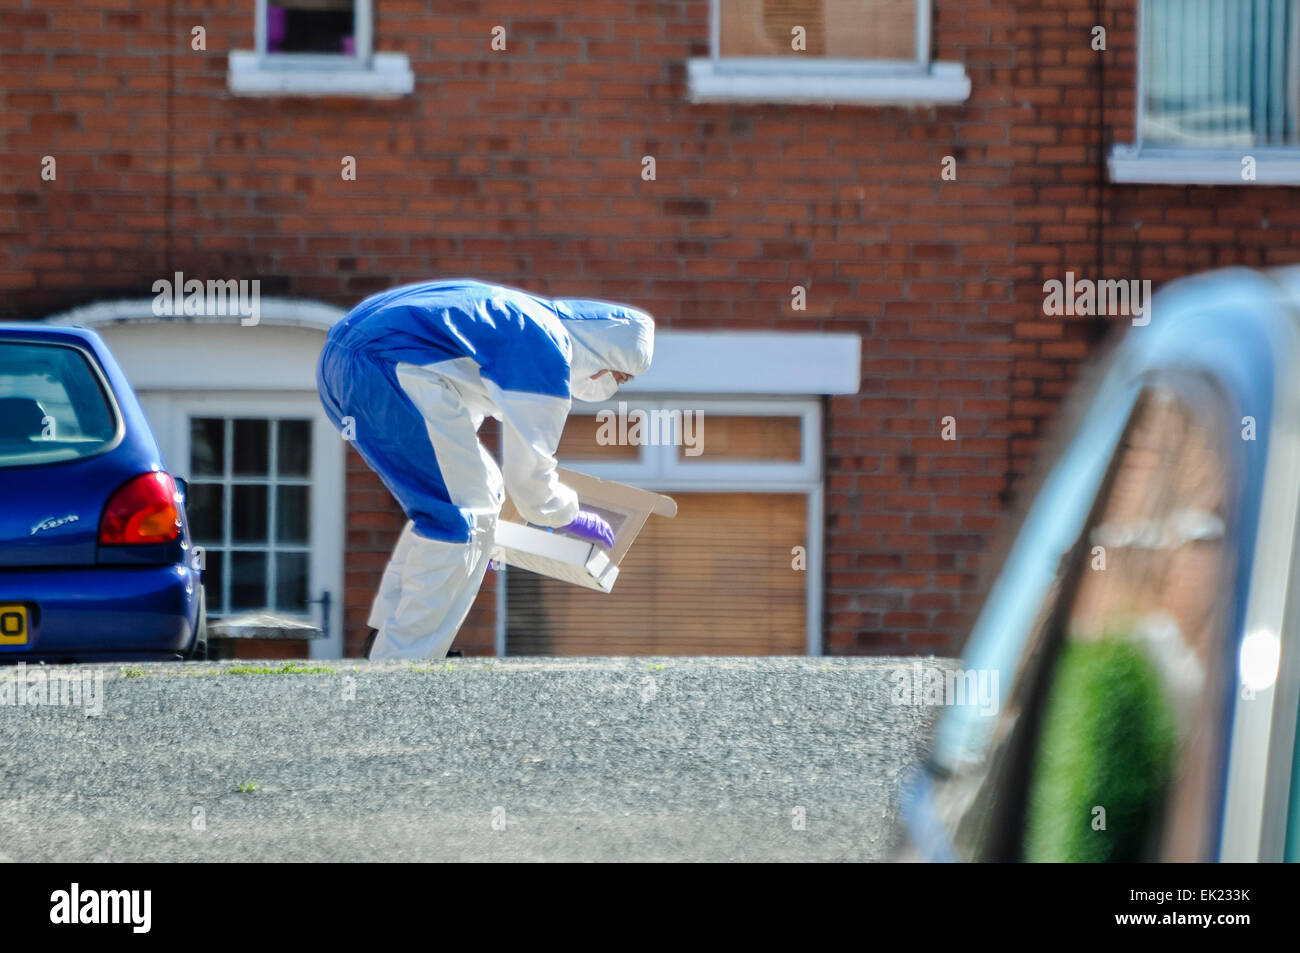 25th August 2013, Belfast - A Forensics officer bends down to lift evidence into a box during a security alert in - Stock Image